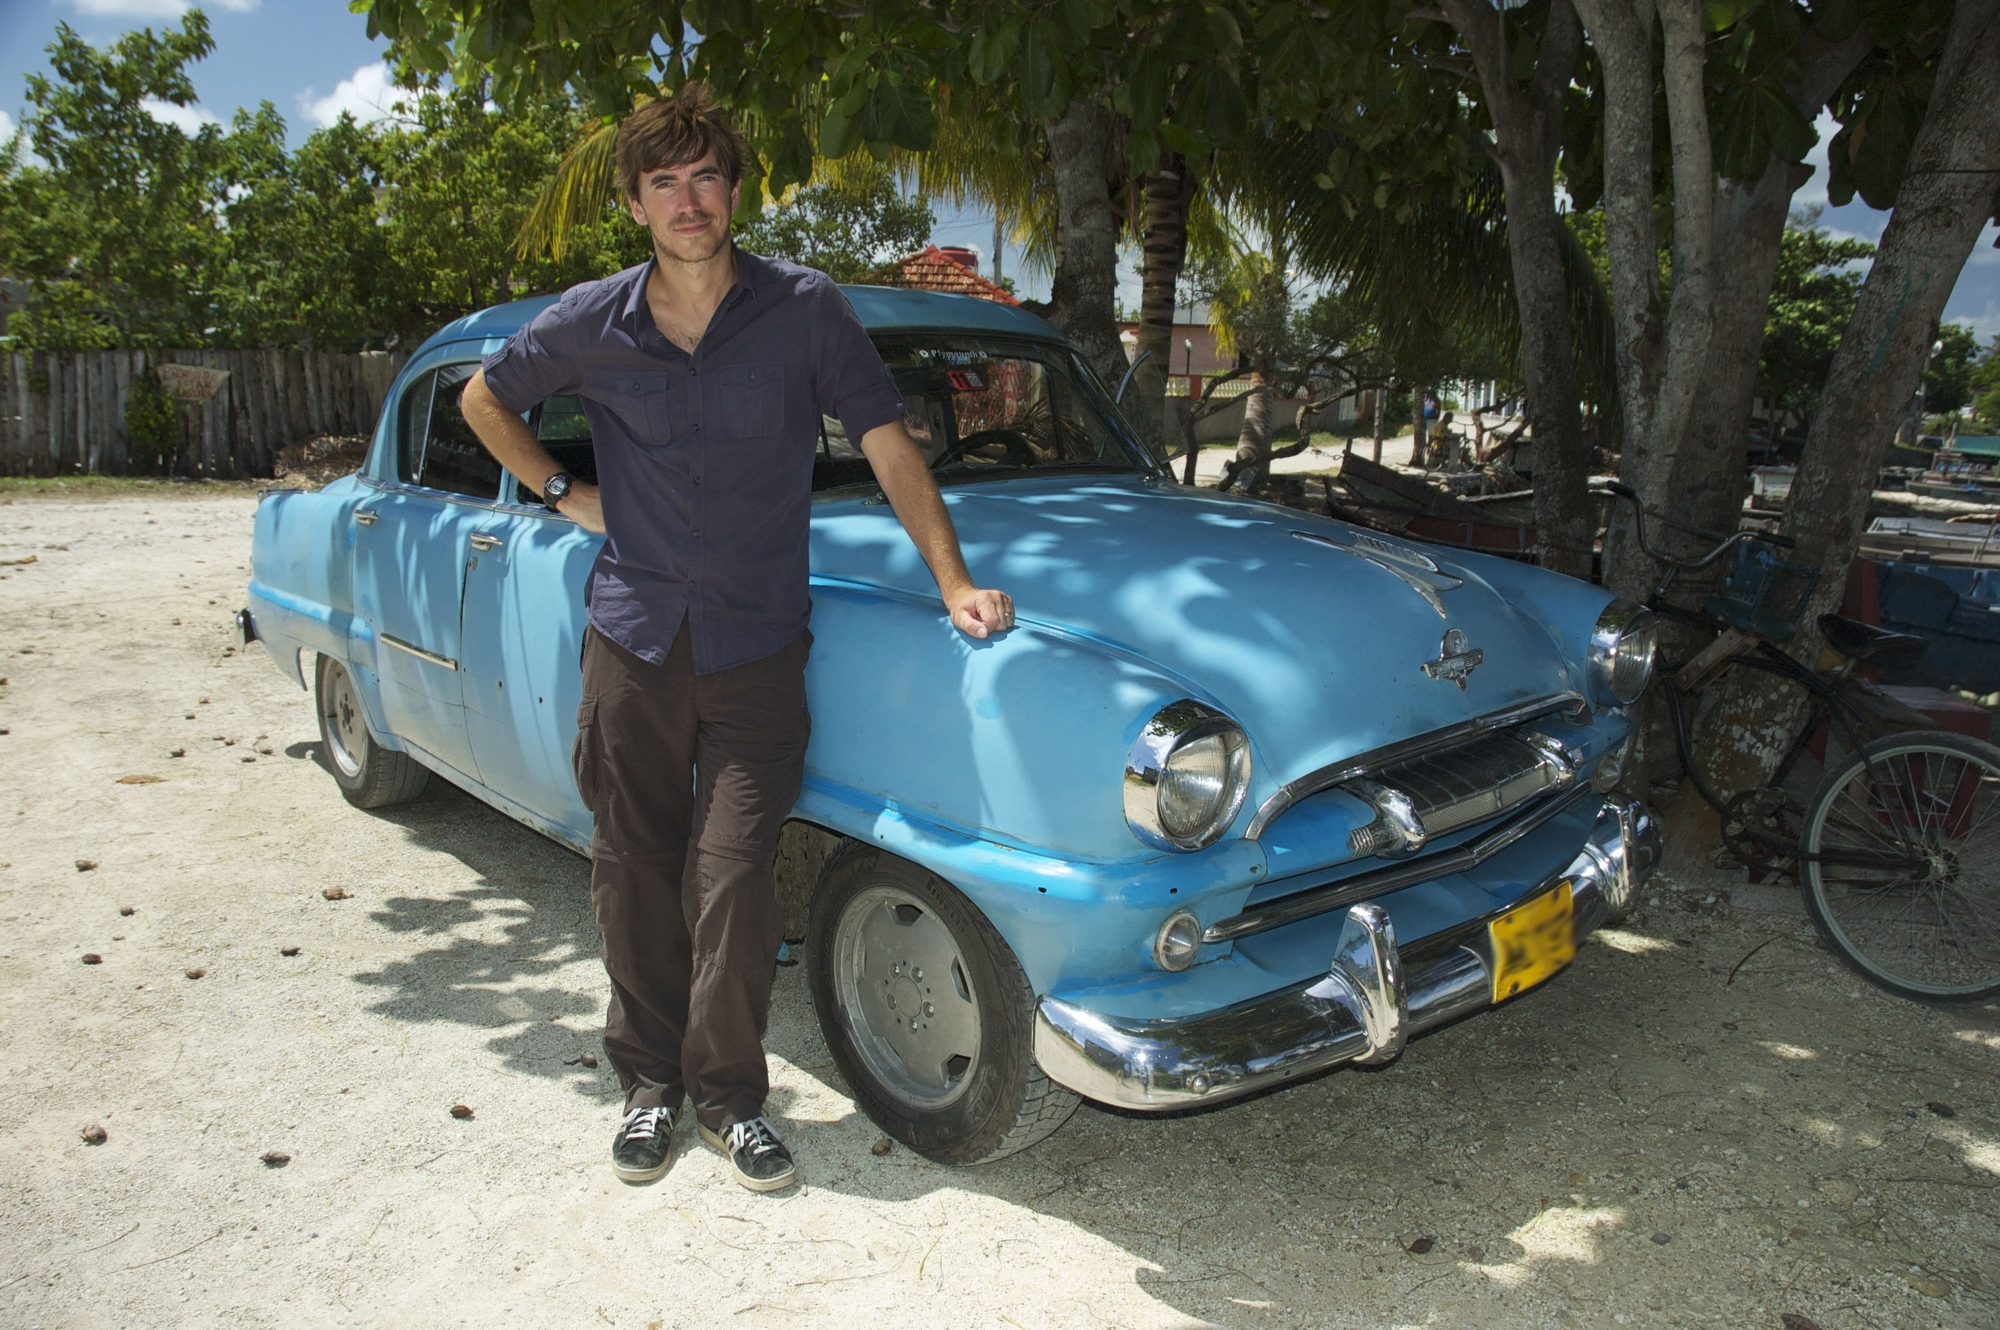 Simon Reeve: Last Chance to See Cuba